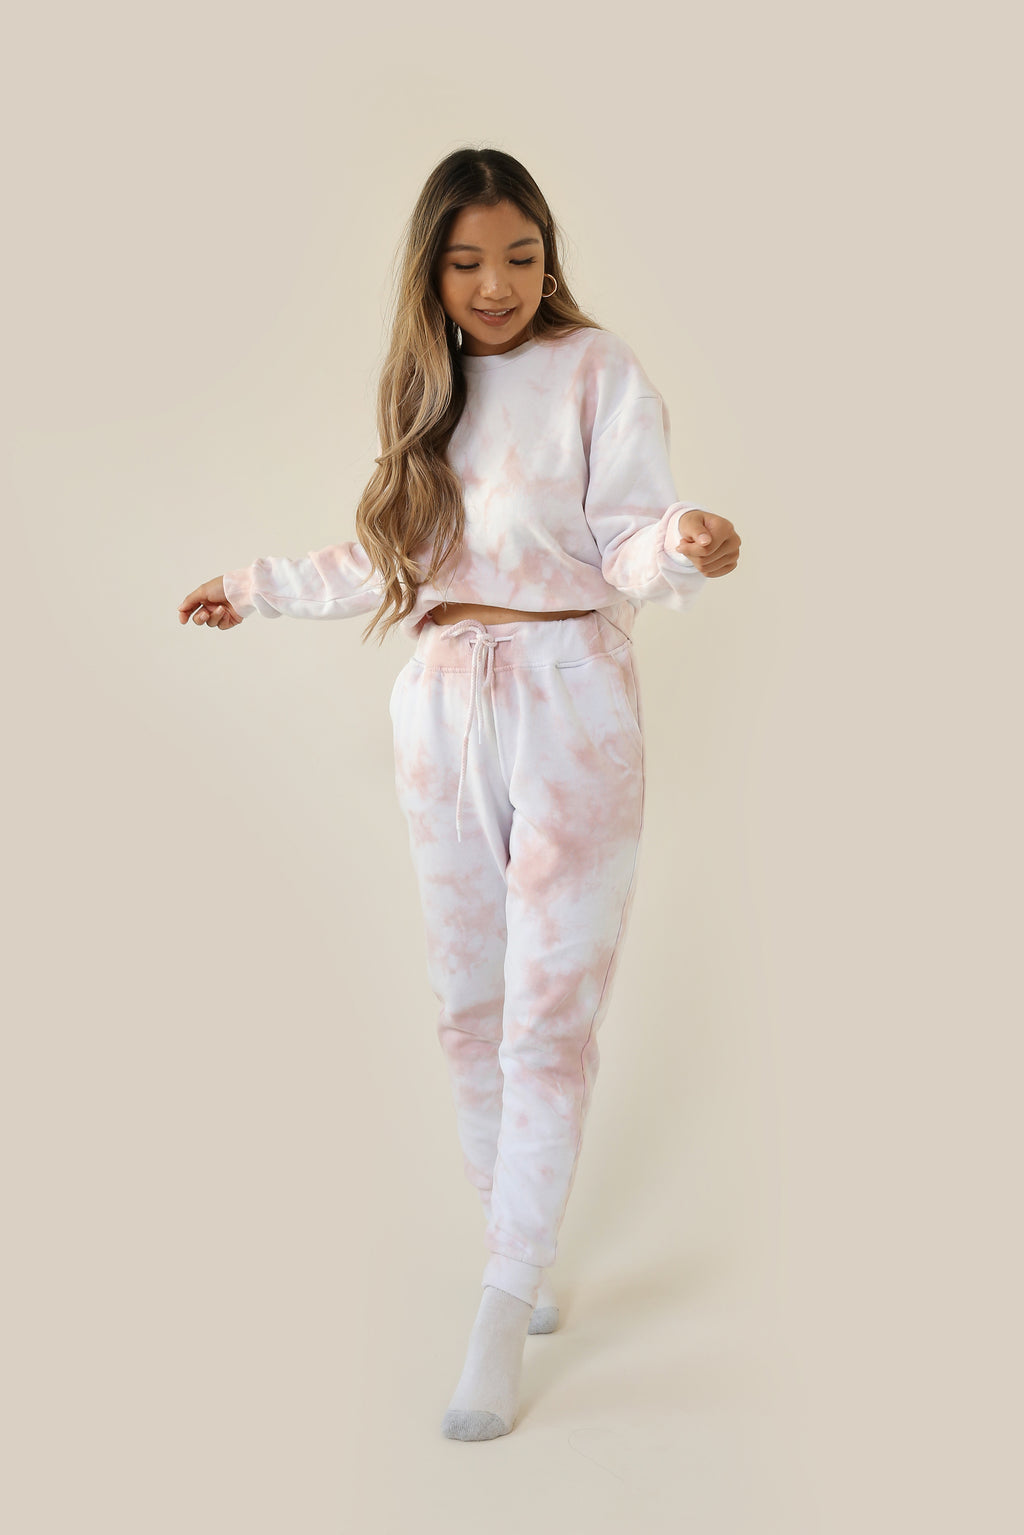 wild rina wildrina.com mauve pink dark blush tie dye matching set sweatpants jogggers sweats sweatshirt sweater crewneck loose comfy loungewear